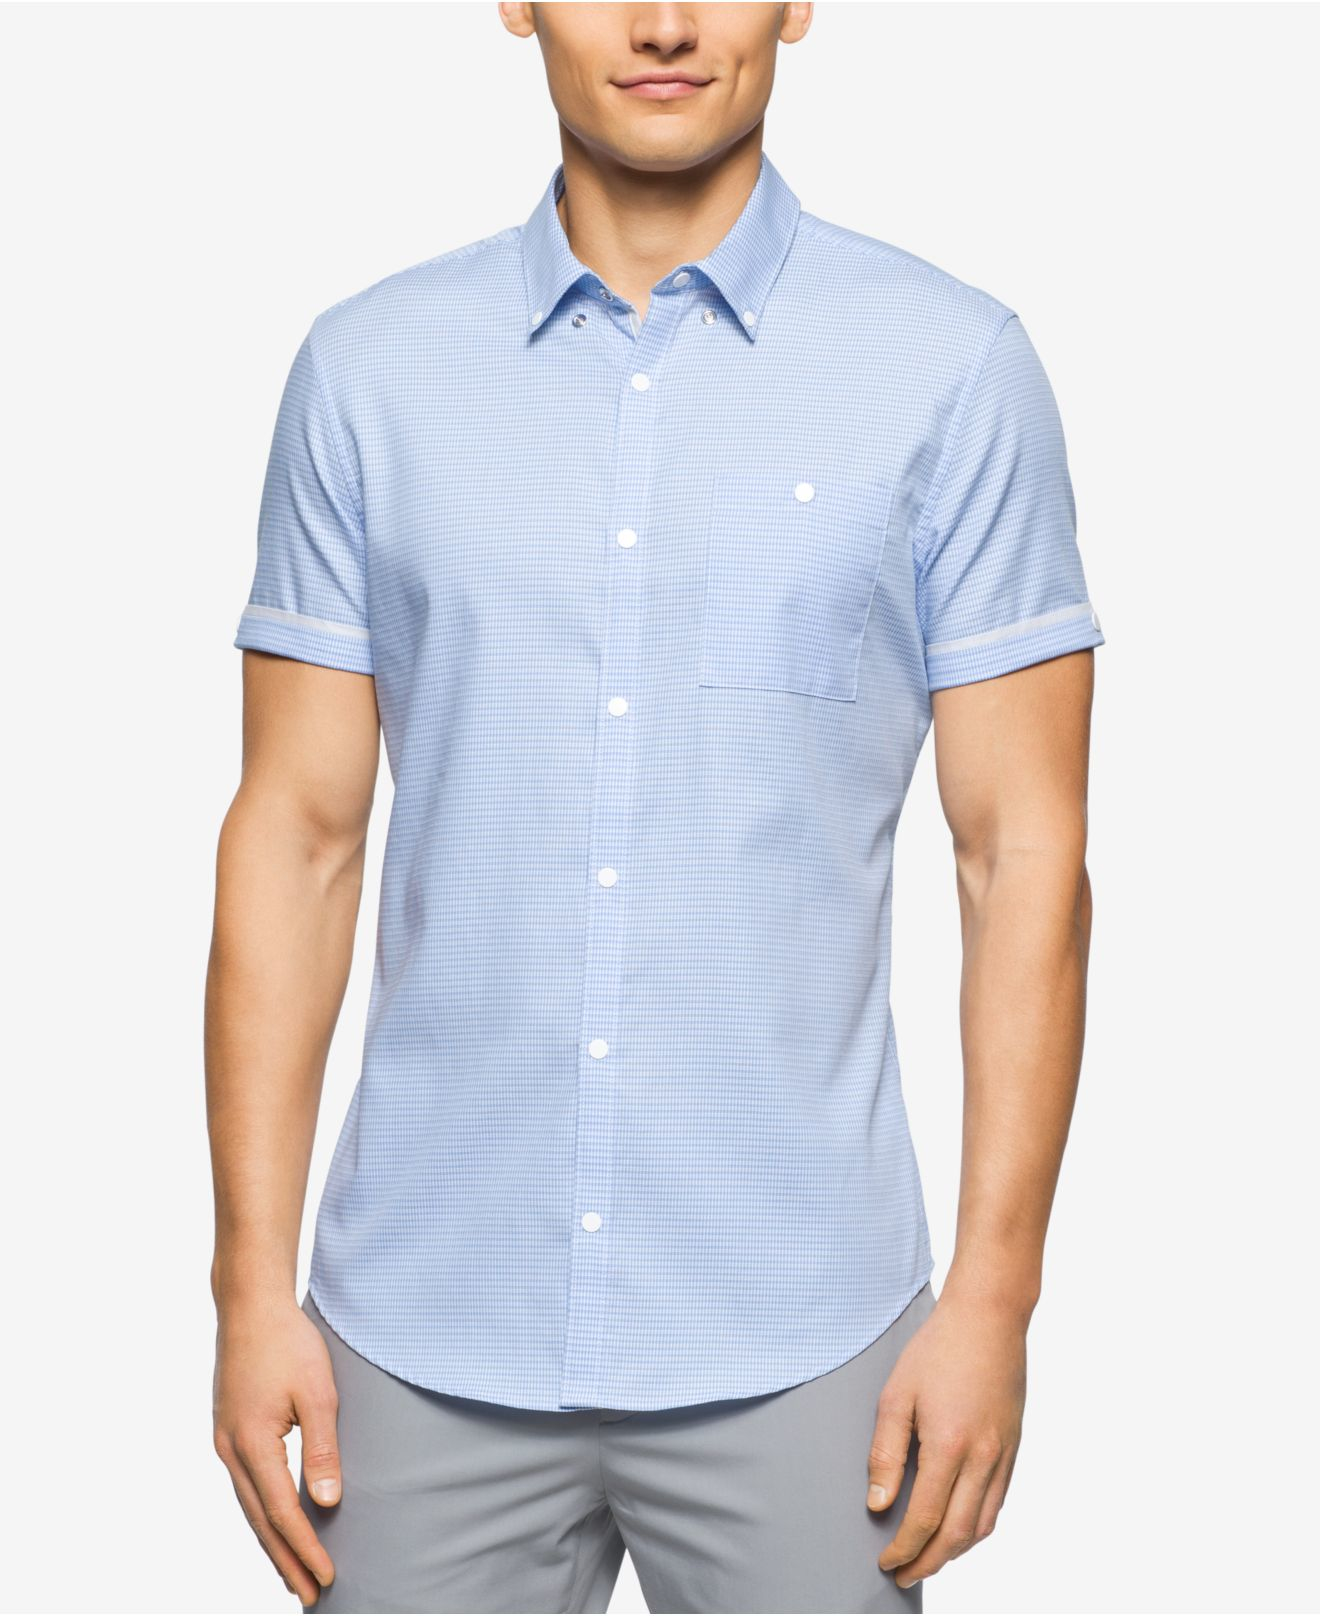 Calvin klein Men's Slim-fit Textured Short-sleeve Shirt in Blue ...